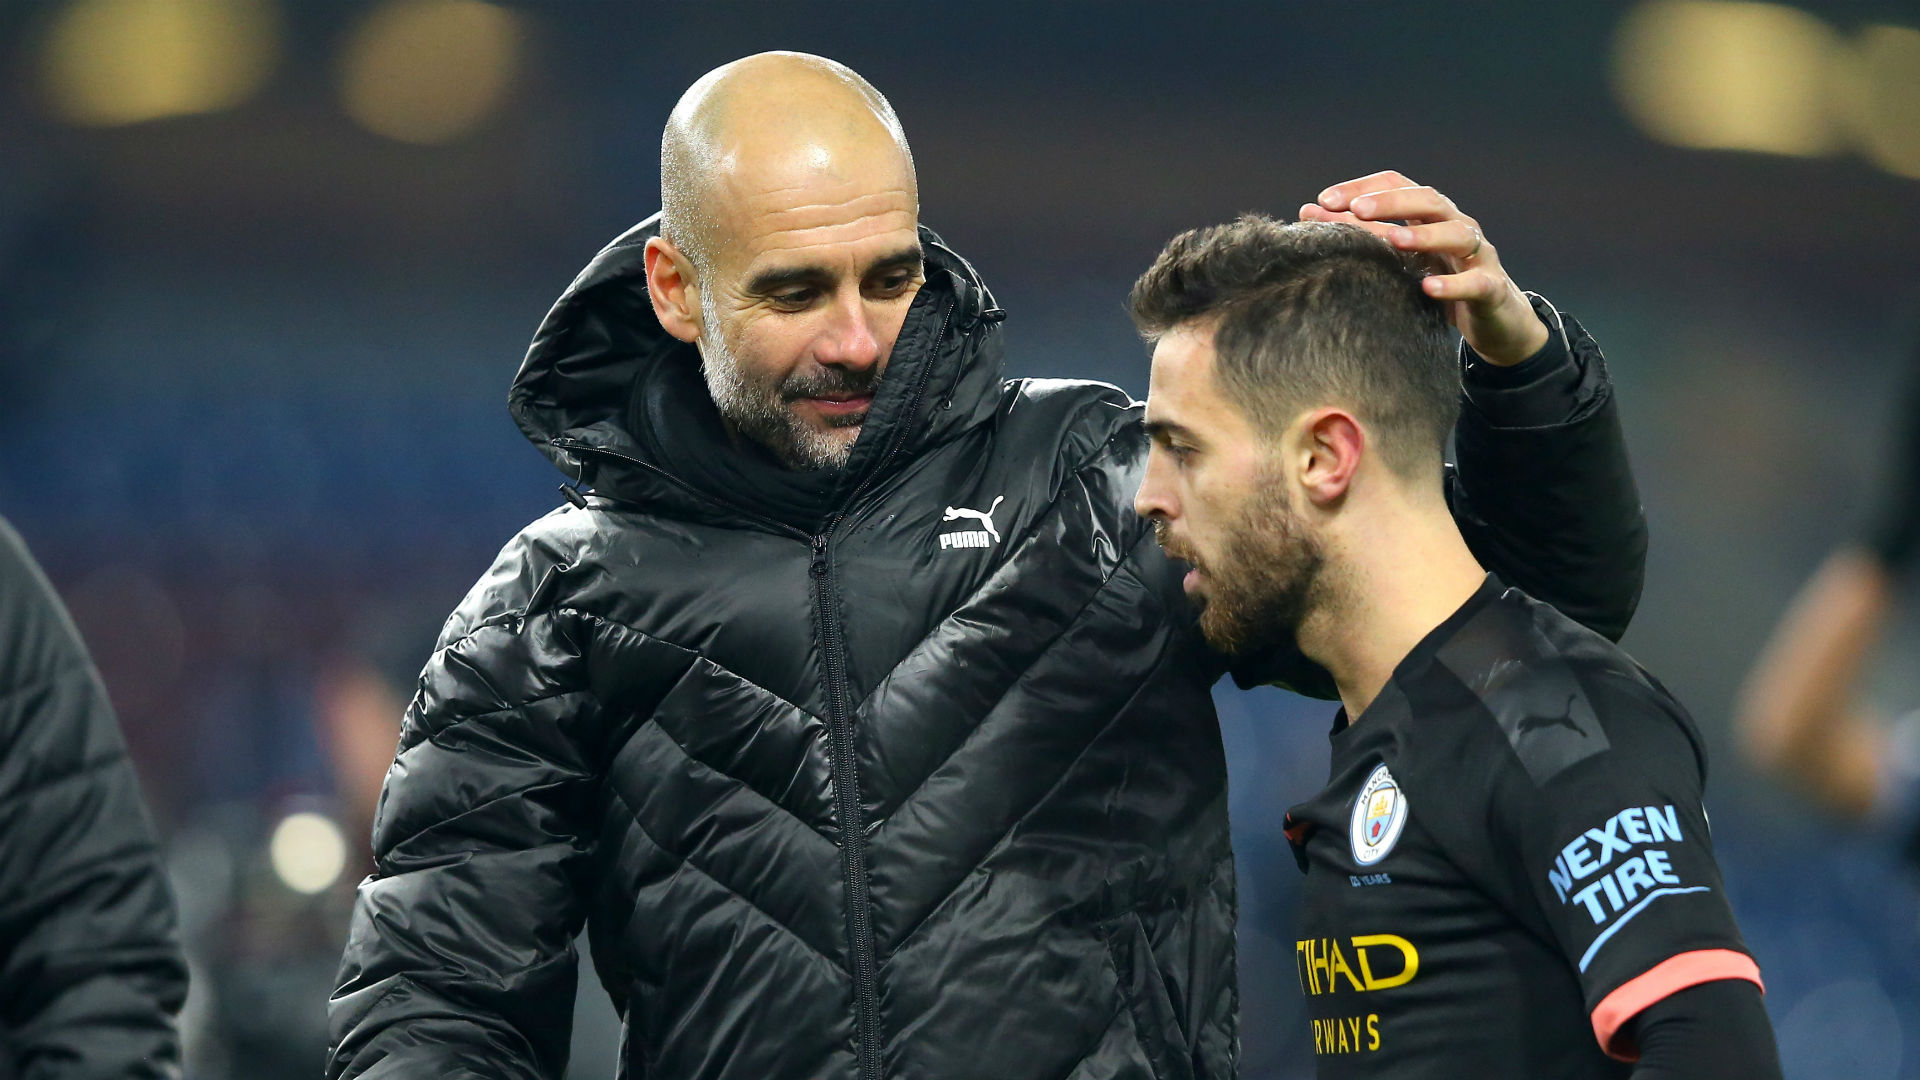 Manchester City returned to winning ways against Burnley but Pep Guardiola was at once sarcastic and realistic regarding their title hopes.